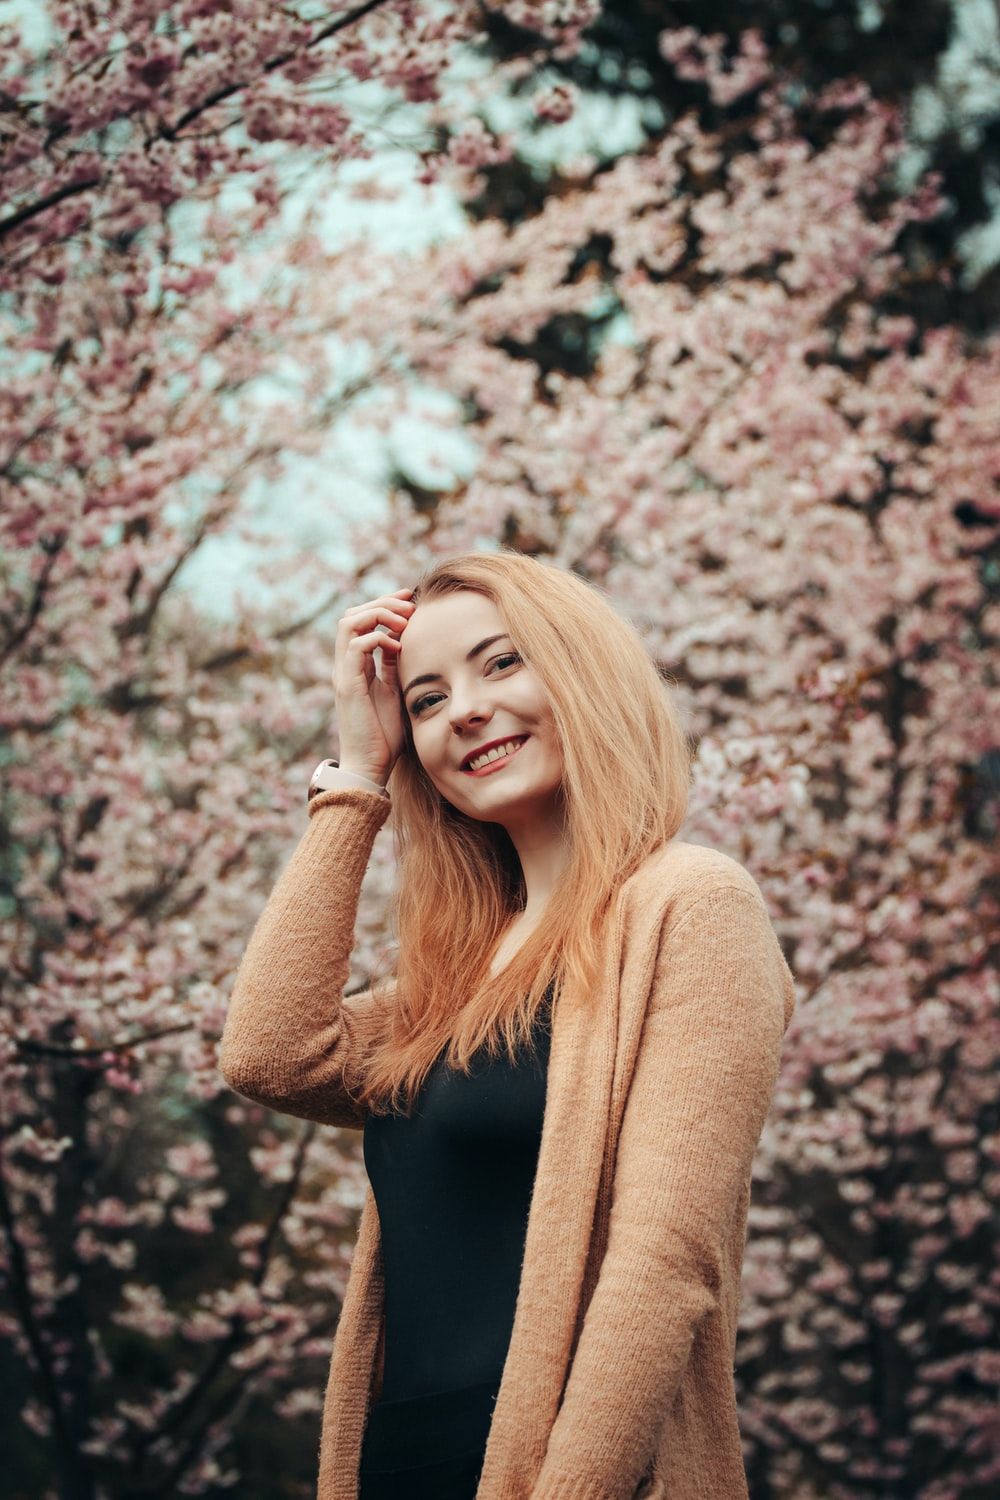 woman in brown sweater smiling